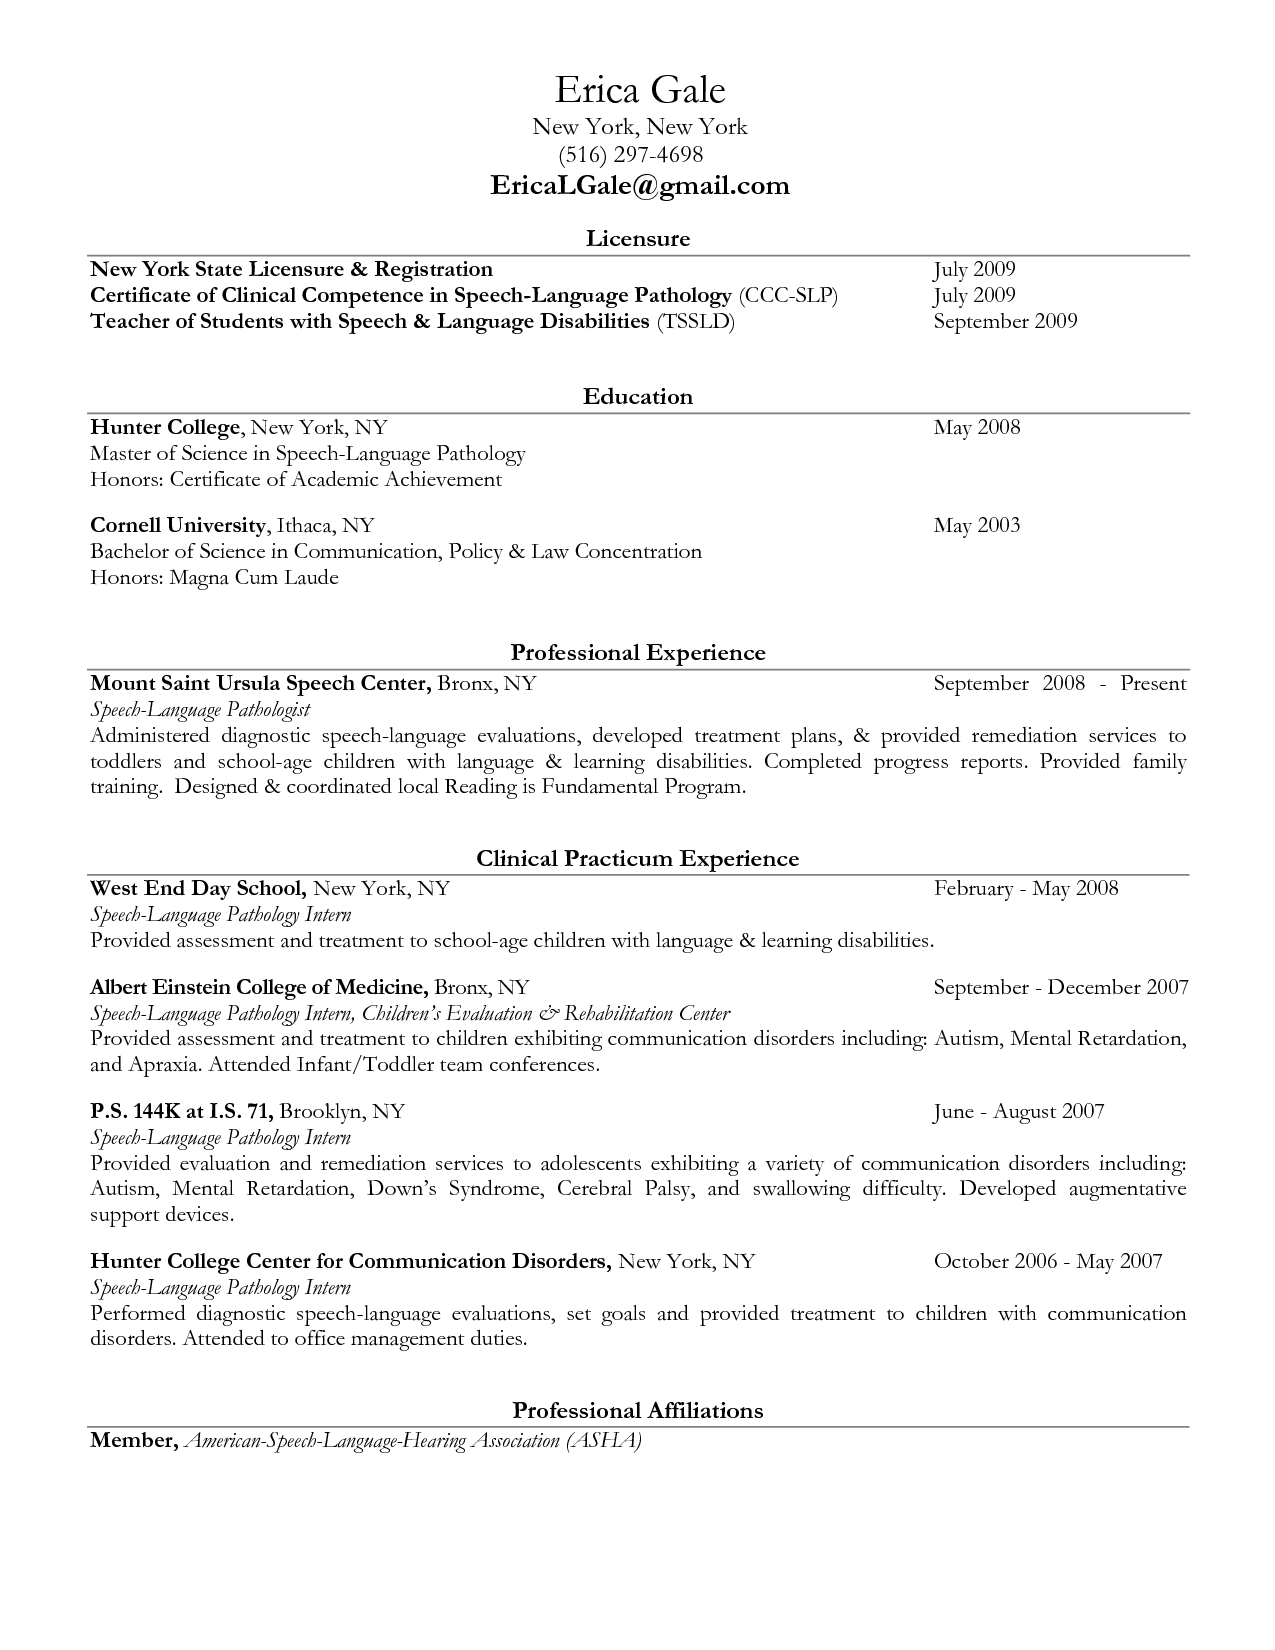 Superb Speech Pathologist Resume Example Spectacular Inspiration Slp Resume  Examples 12 Homey Design 10 For . Intended For Speech Pathology Resume